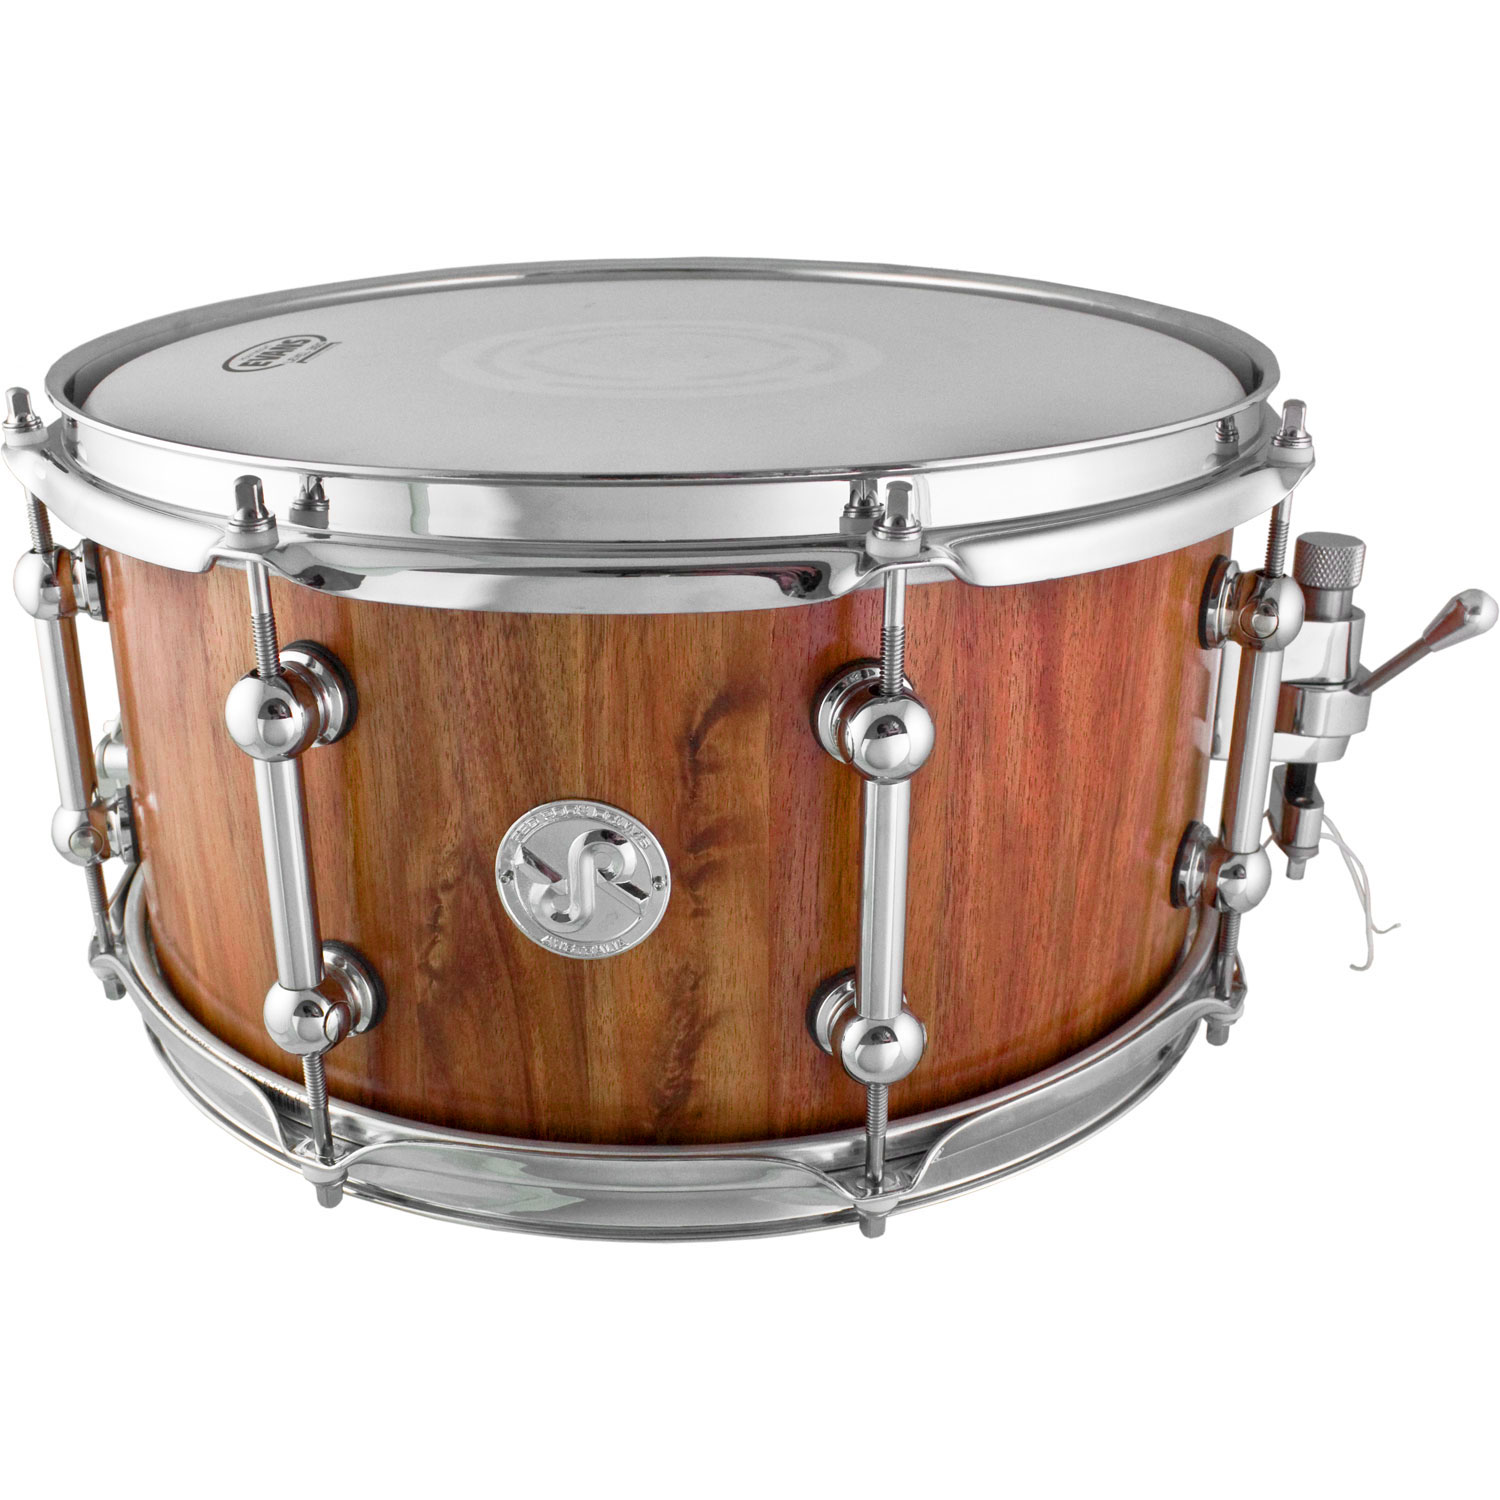 "Red Rock Drums 7"" x 13"" Tasmanian Blackwood Snare Drum"